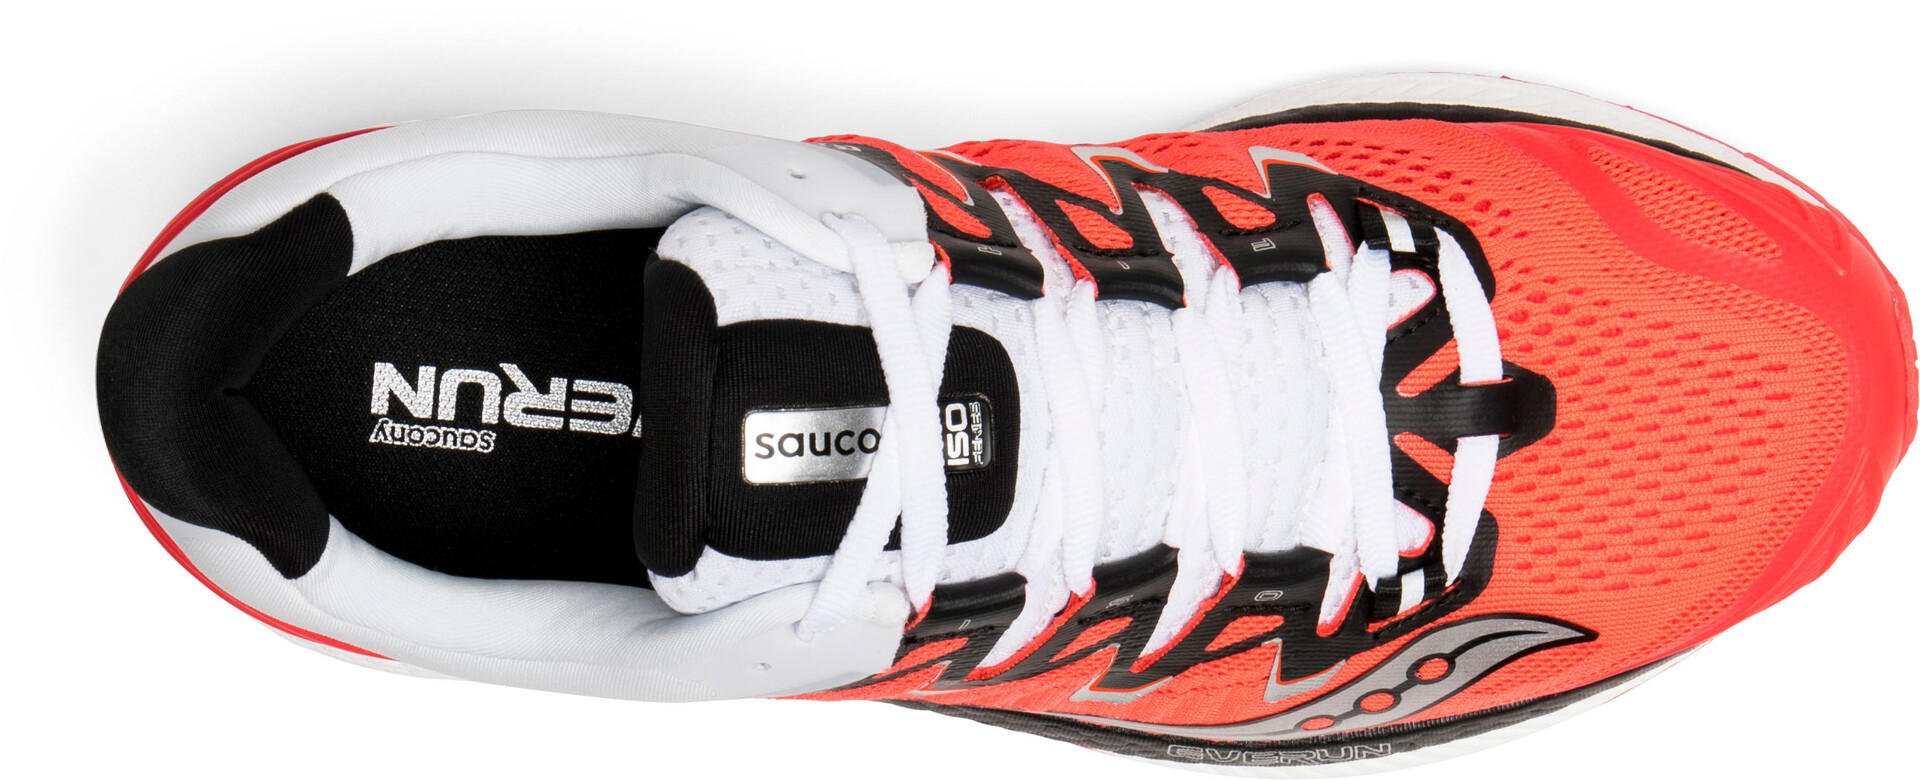 Running Saucony Femme Rougenoir Triumph Chaussures Iso 4 wqSIPq